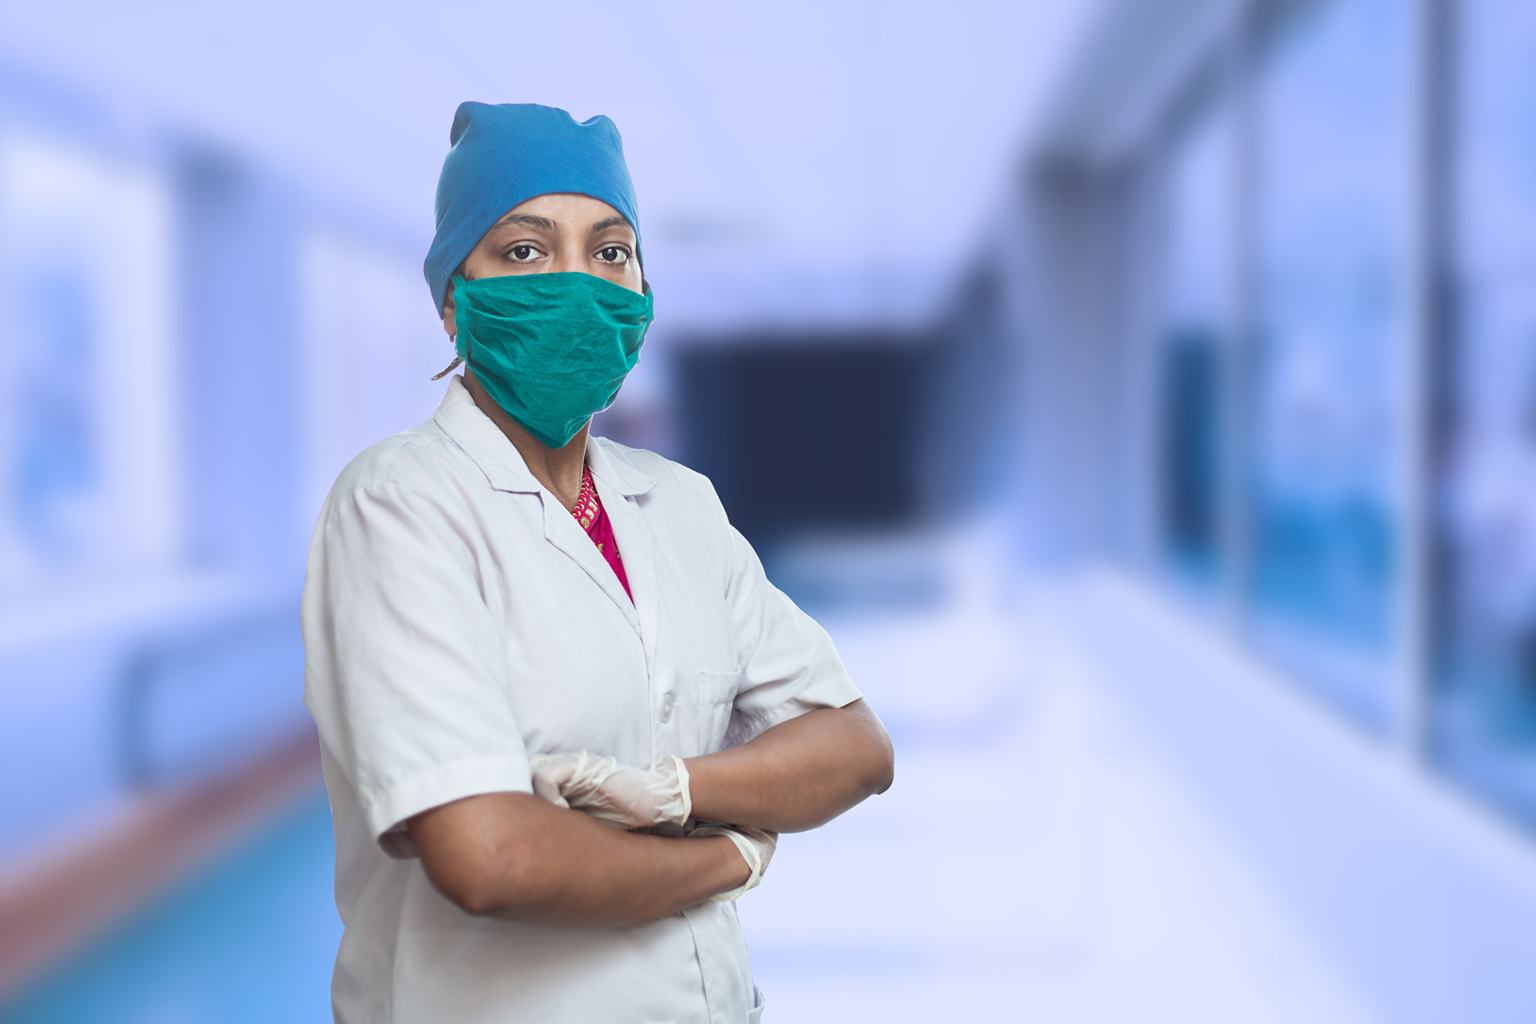 Portrait of female medical worker doctor wearing surgical mask and cap standing crossed arms outside hospital corridor covid-19 coronavirus pandemic